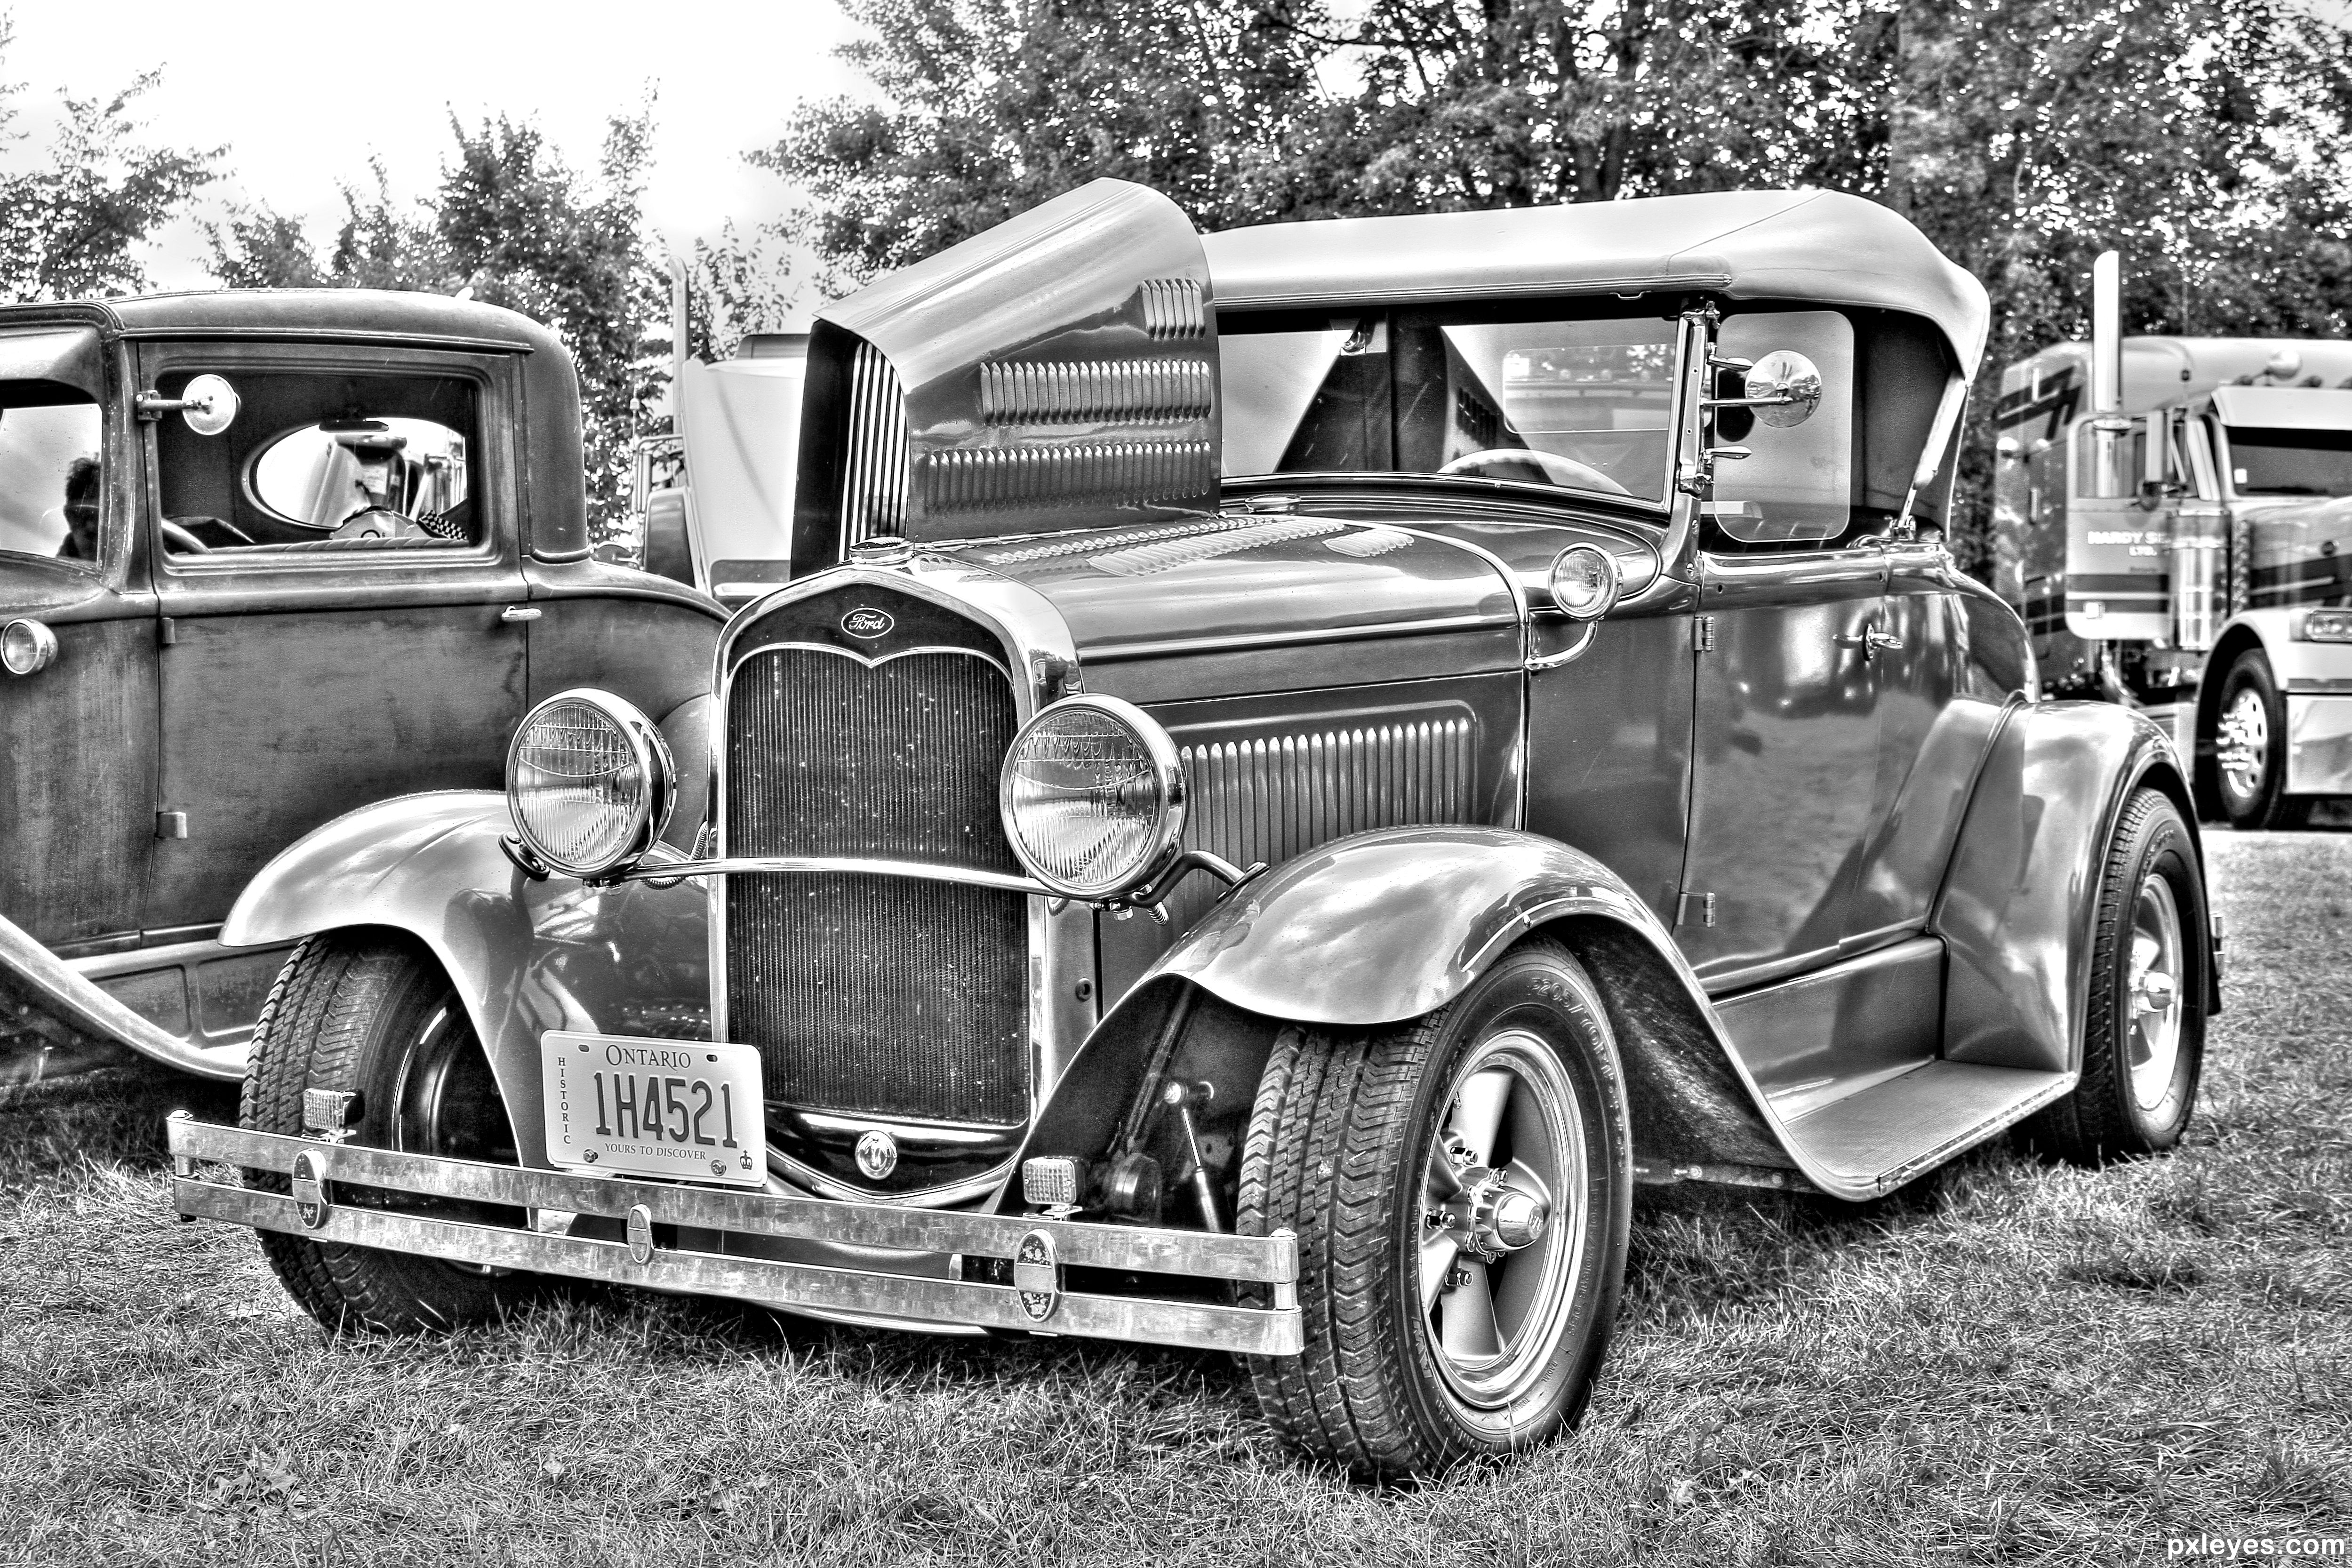 Free photo: Old Car - showroom, vintage, ride - Non-Commercial ...